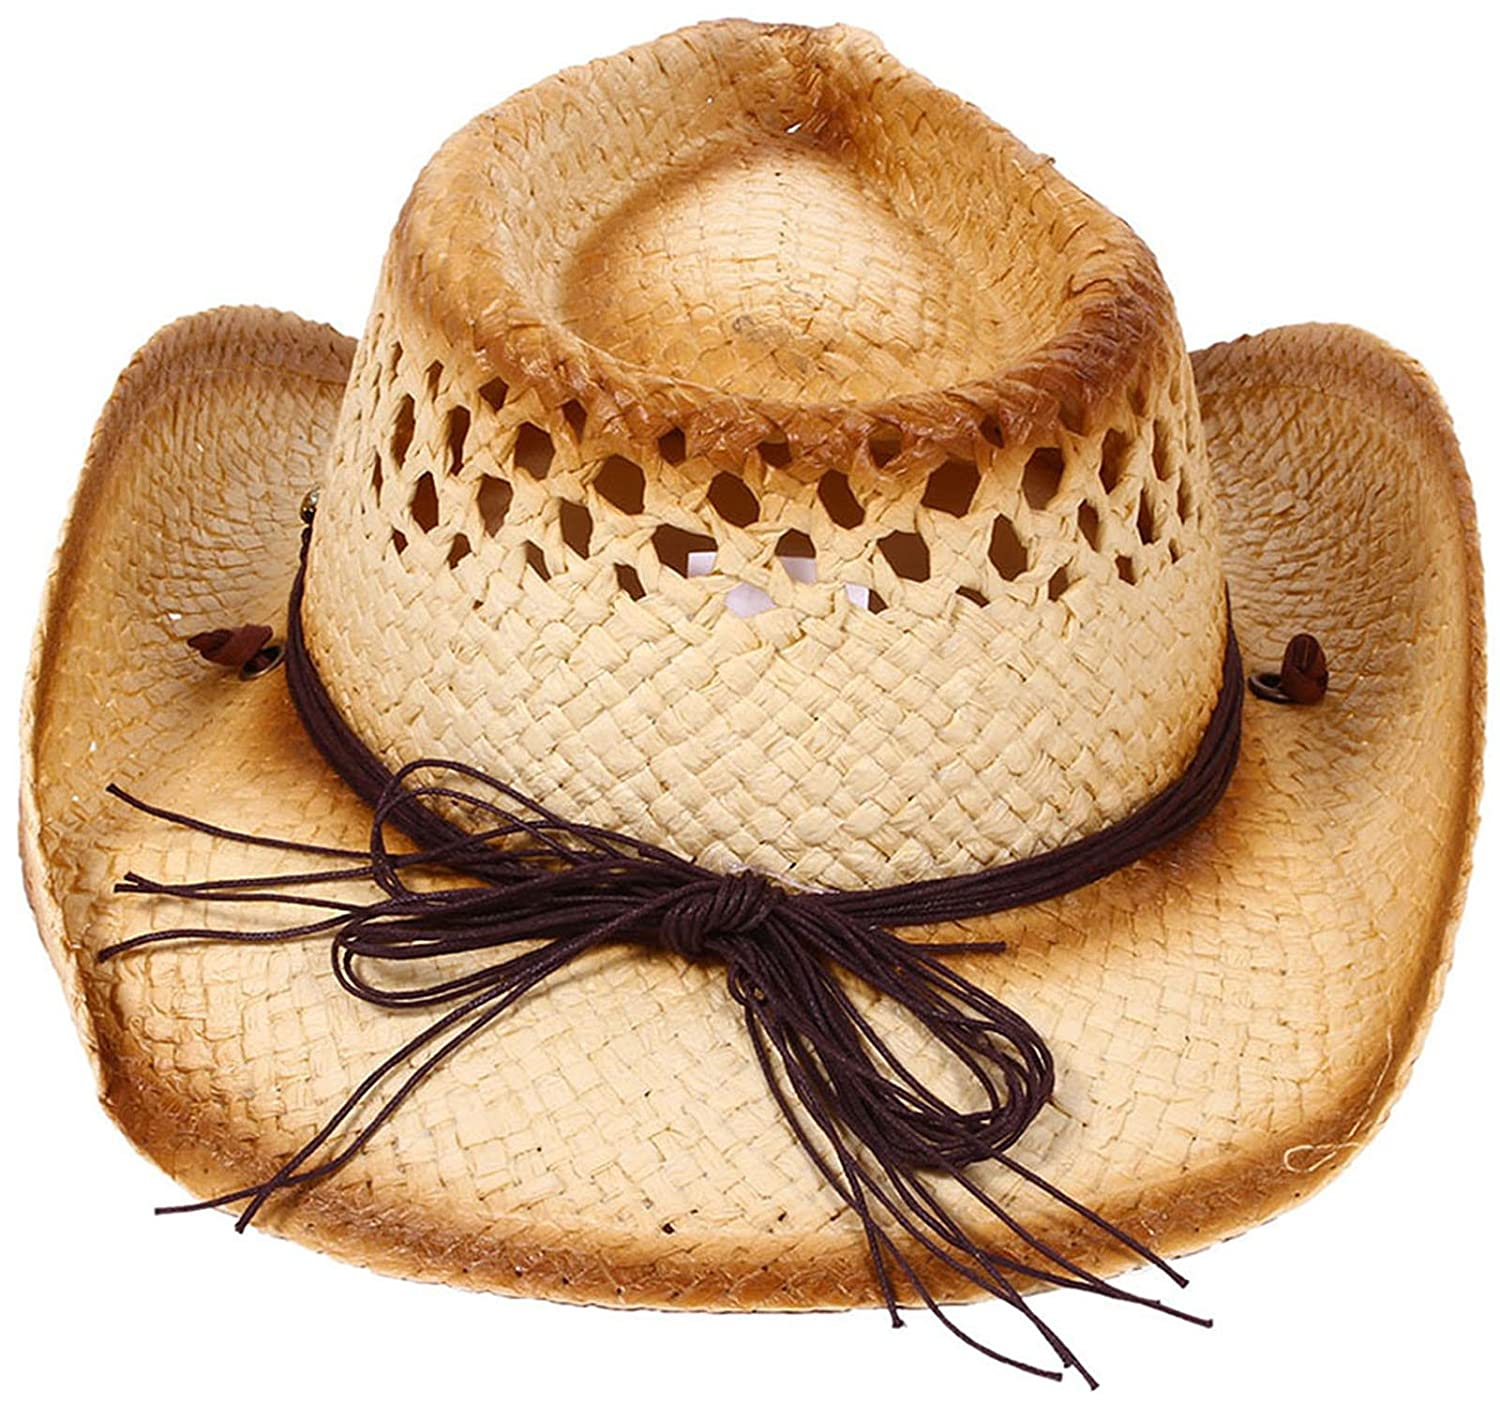 Amazon.com  Kids Childs Summer Party Straw Cowboy Cowgirl Hats Wide Brim  Beach Sun Hats  Clothing 25e2fc03c493